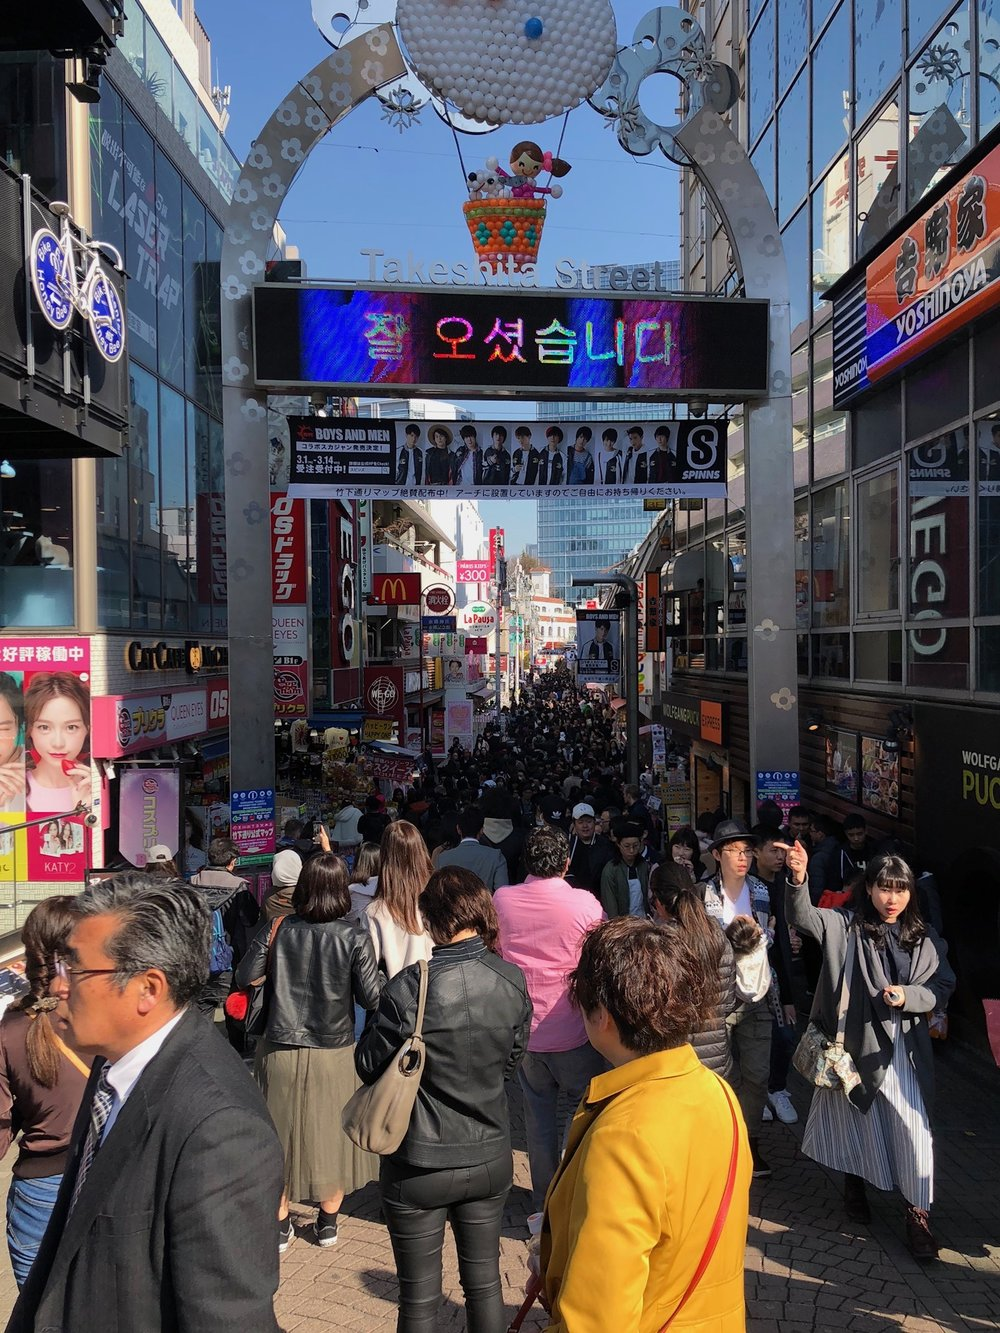 Next stop: Harajuku! Takeshita Street is the main hub for Japanese youth culture. There were many shops devoted to cartoon characters, J-Pop music groups, and decadent and fun desserts. It reminded us of the Jersey Shore boardwalk!